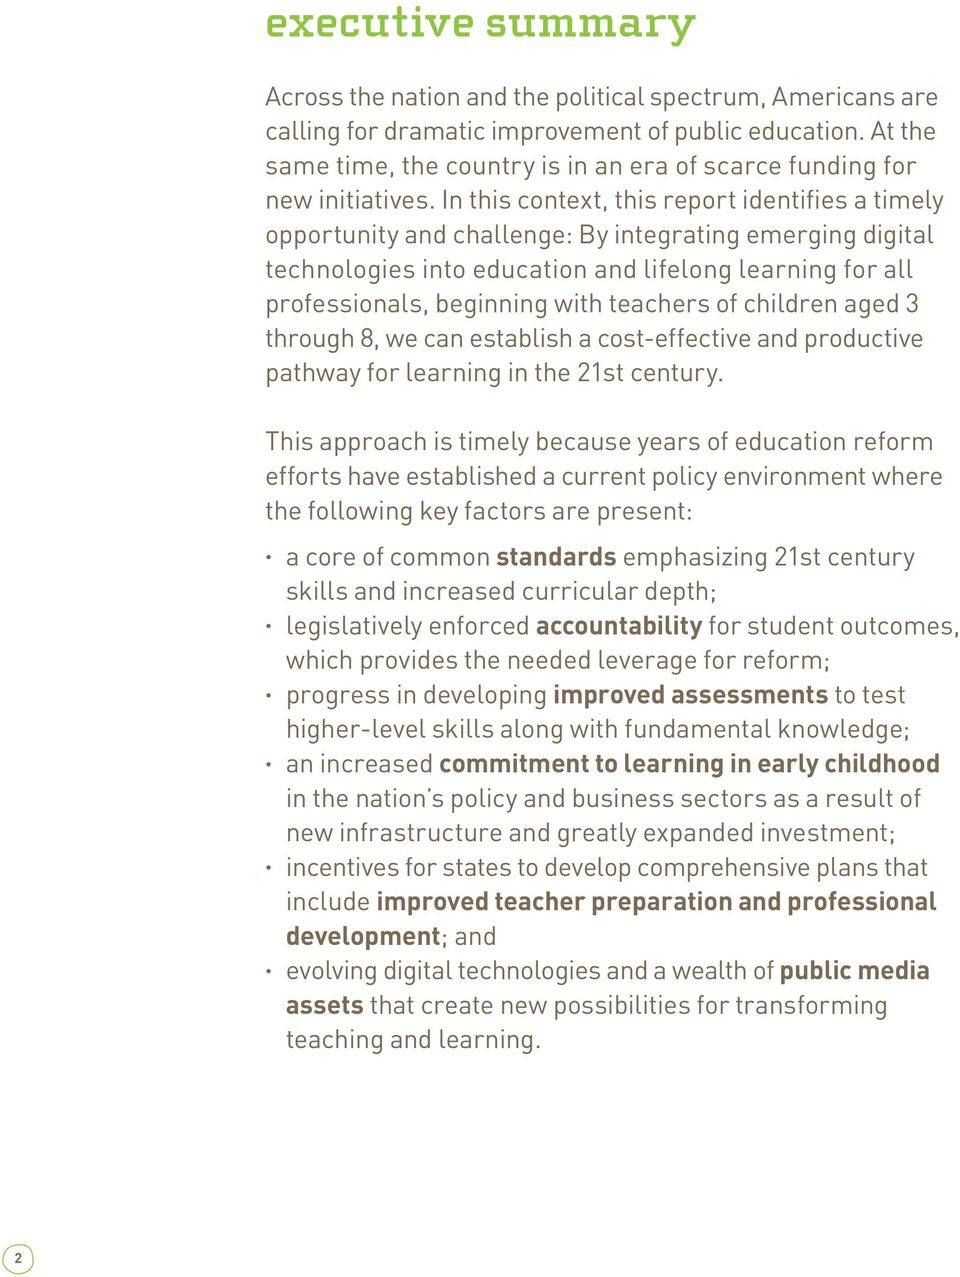 In this context, this report identifies a timely opportunity and challenge: By integrating emerging digital technologies into education and lifelong learning for all professionals, beginning with